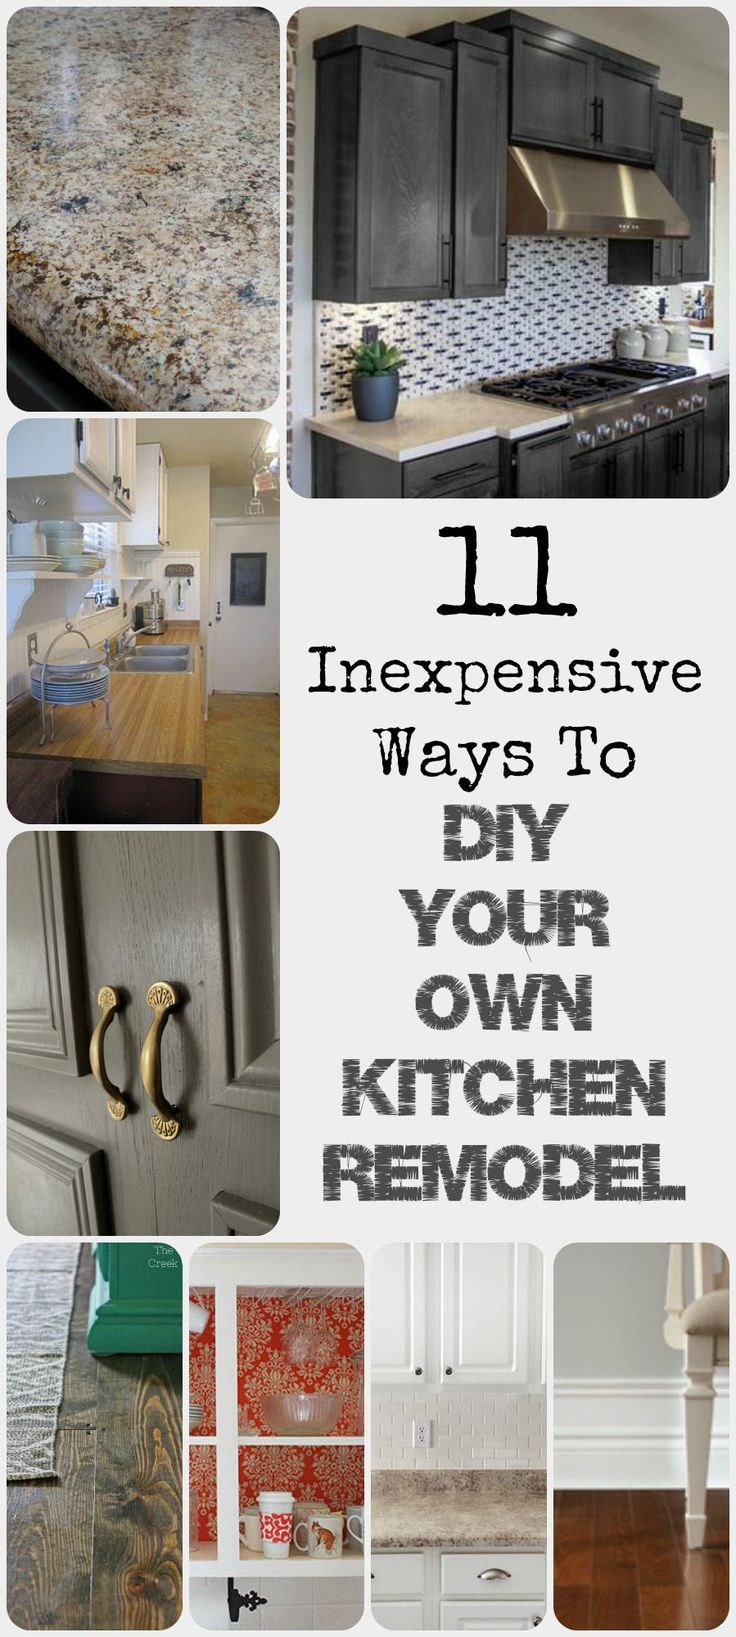 Image Result For Inexpensive Ways To Redo Countertops